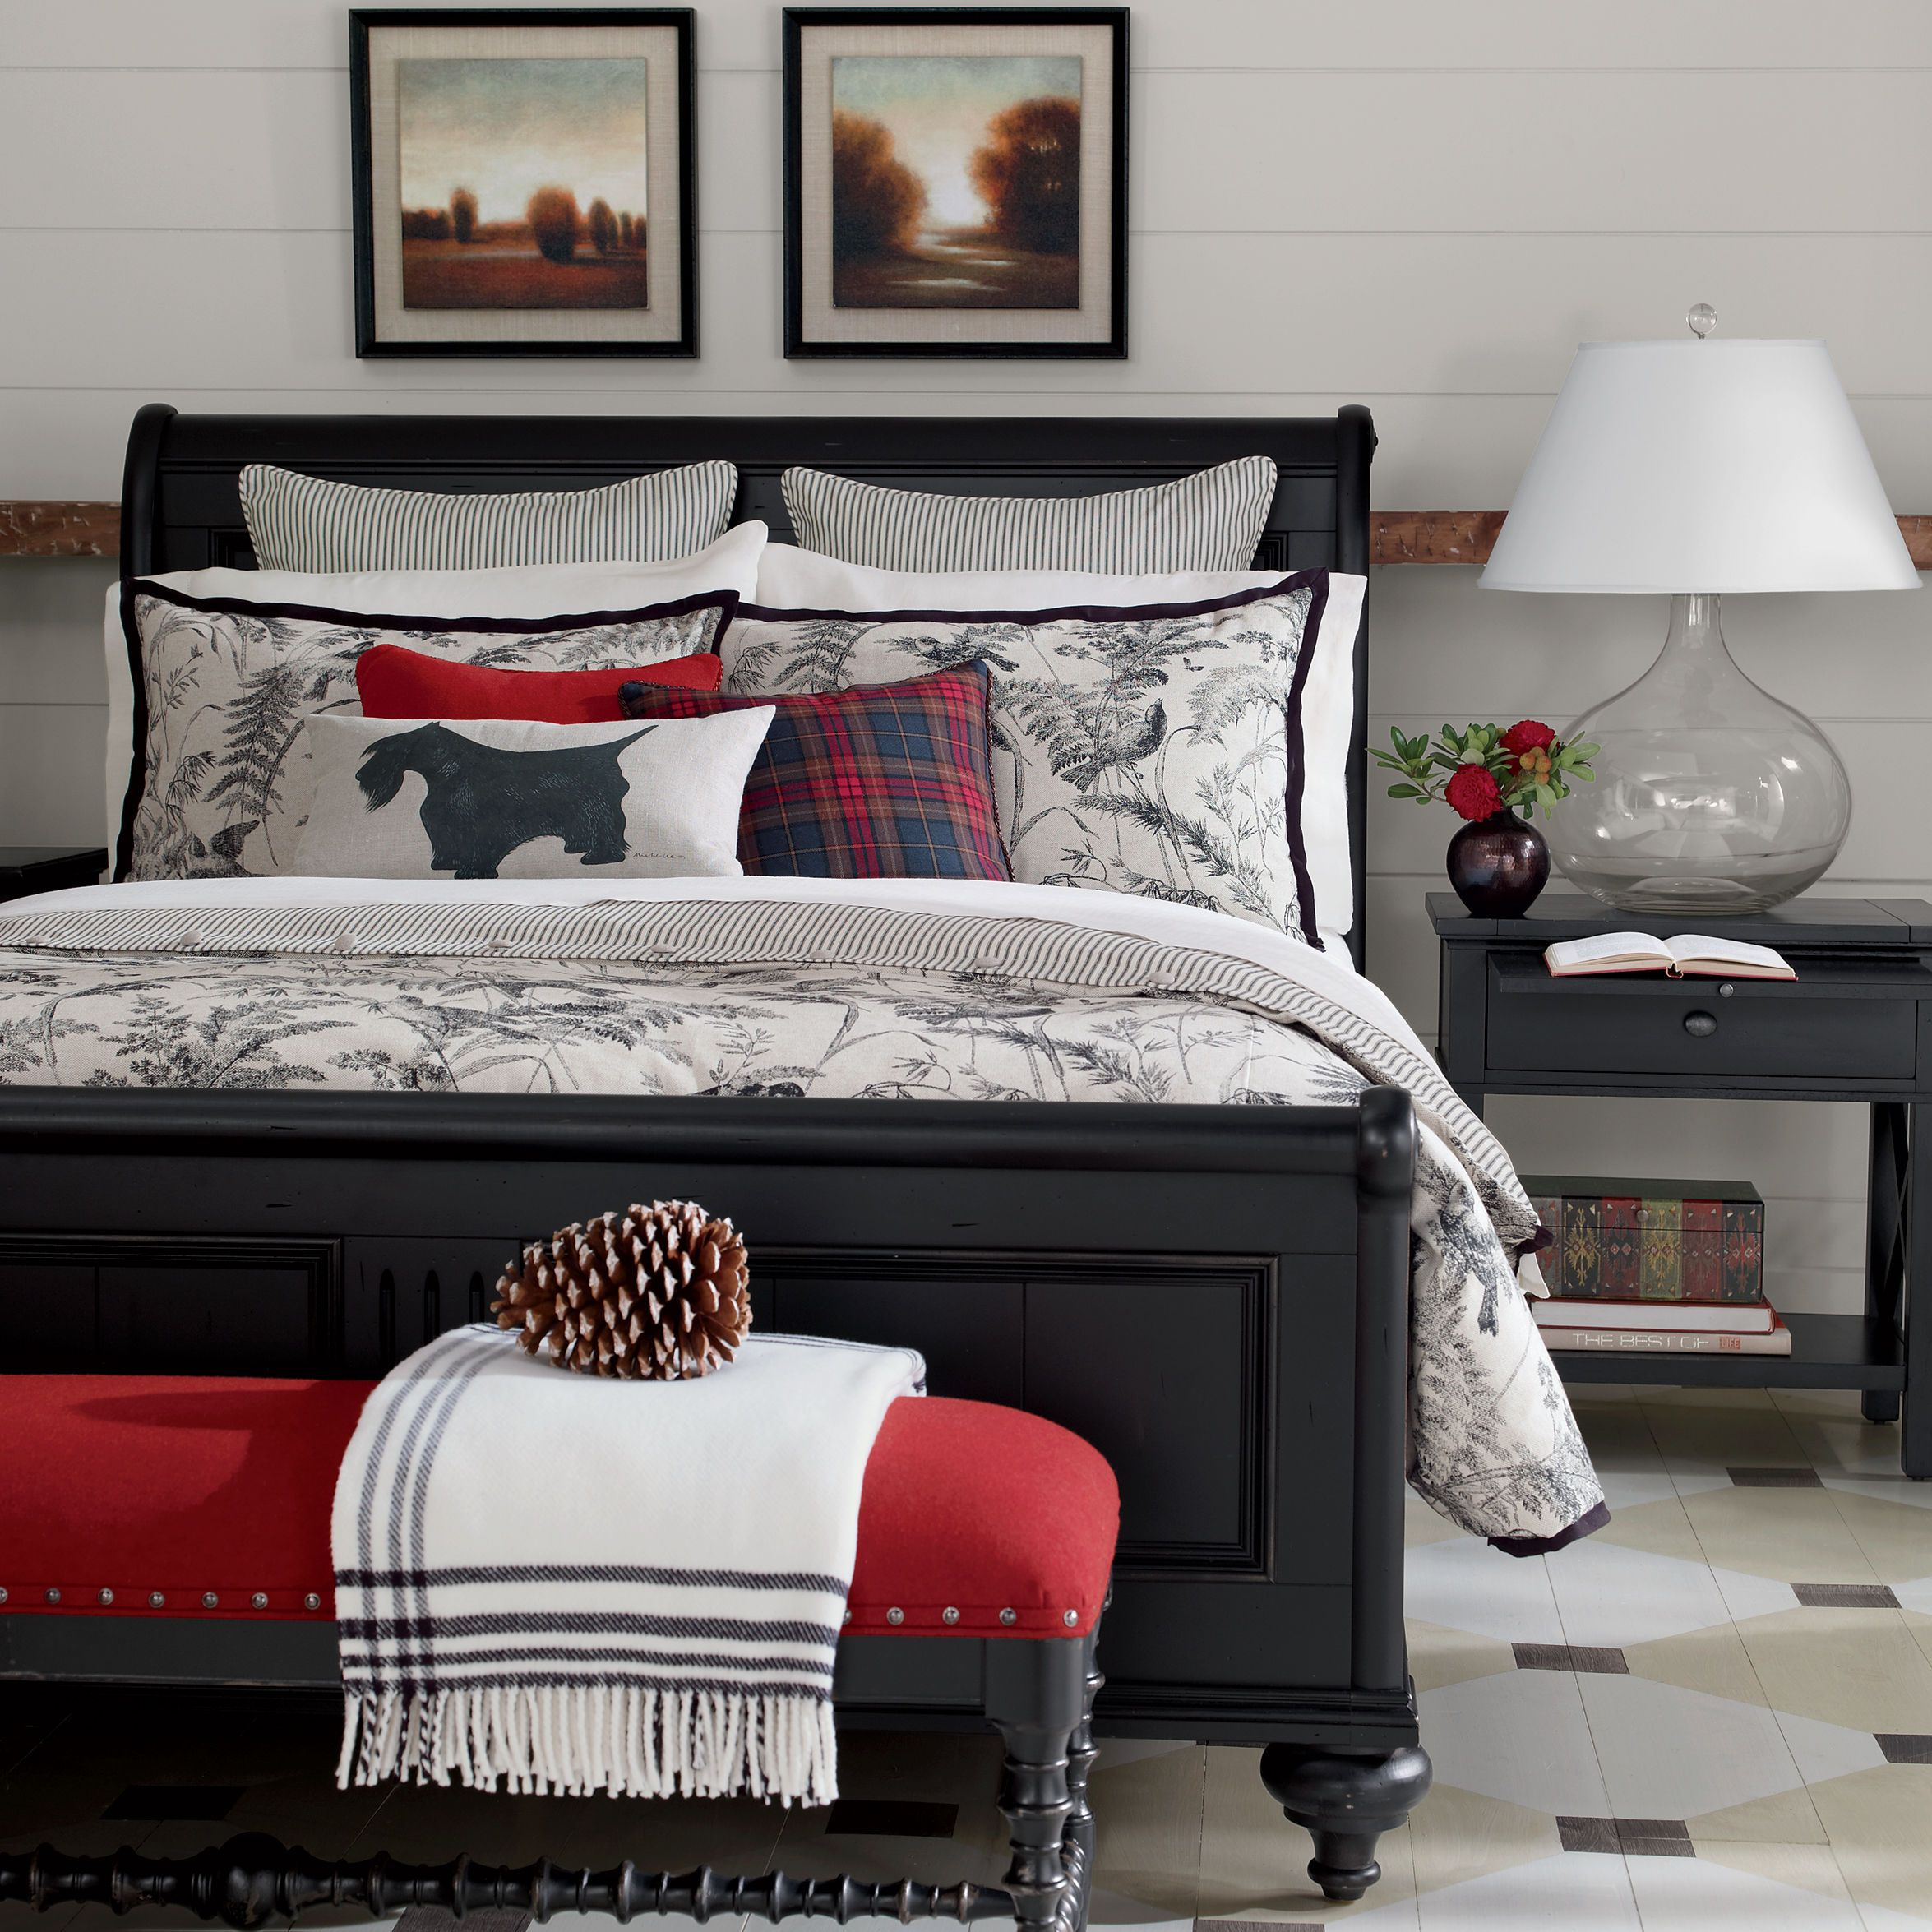 ethan allen bedroom furniture. Vintage Country bedroom  Black and white Ethan Allen furniture Robyn Bed